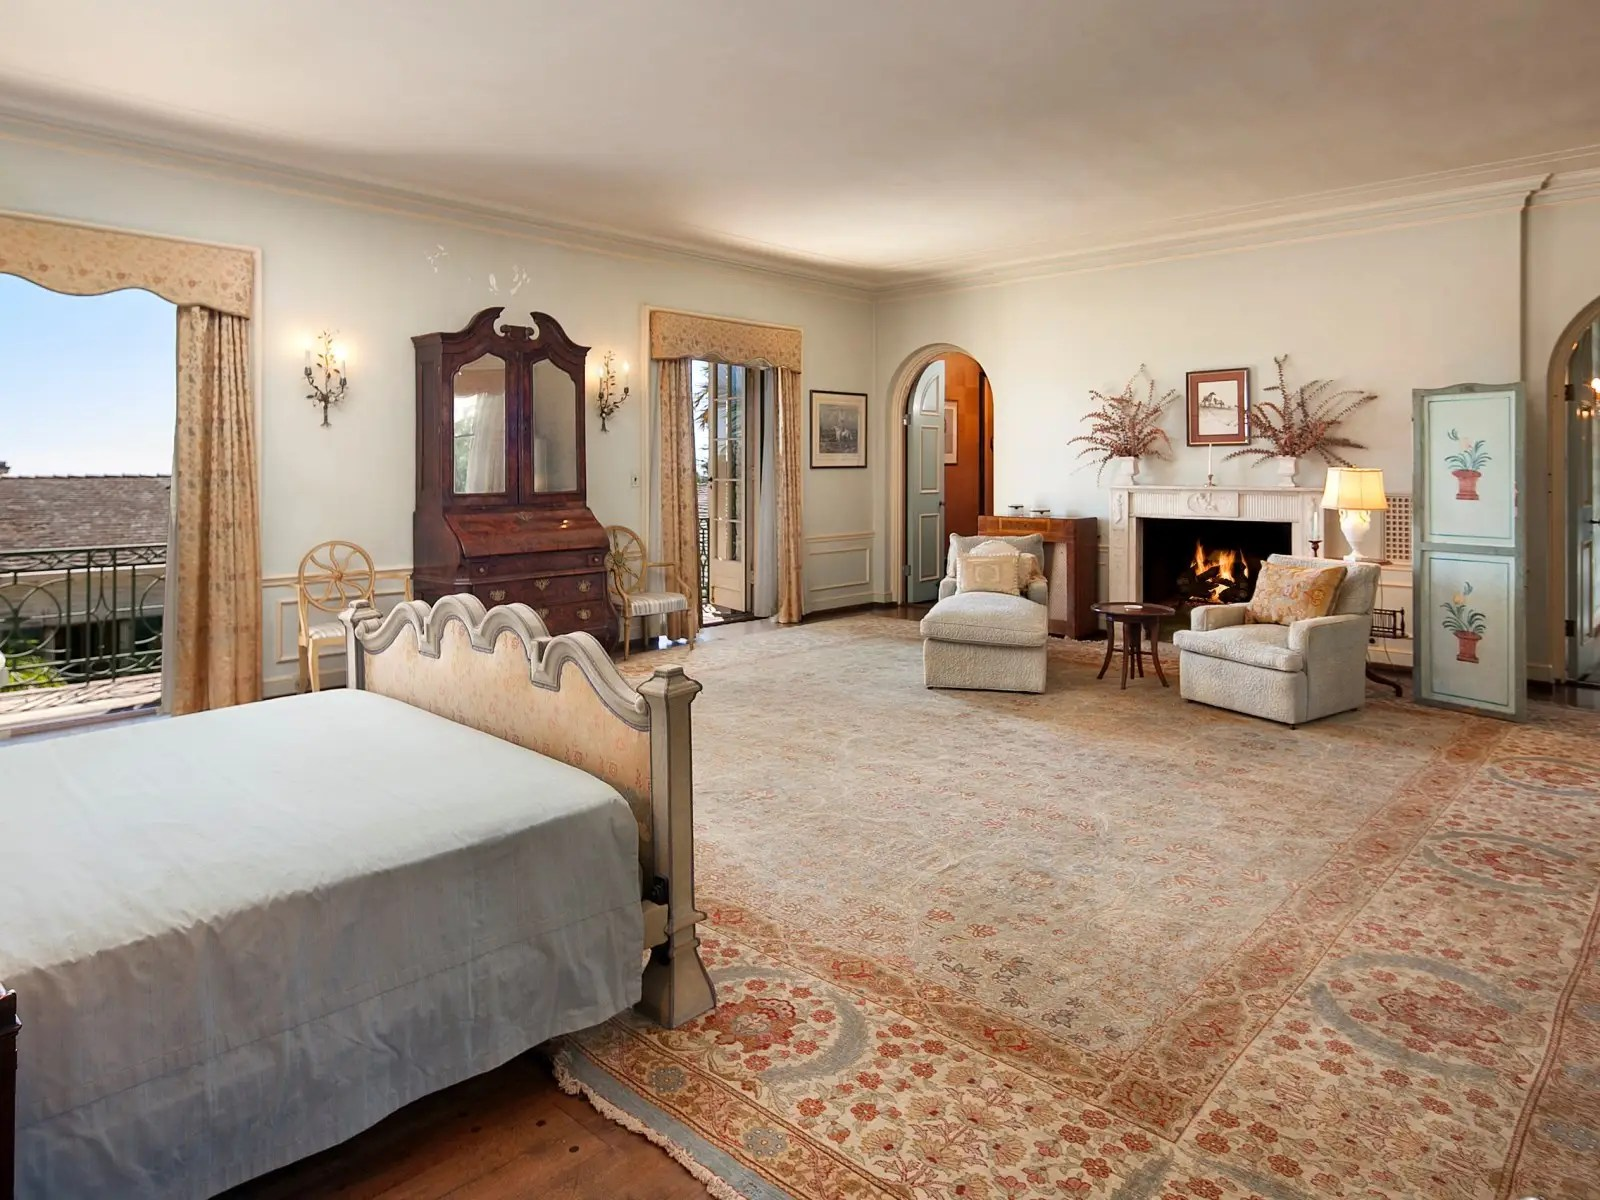 At Rancho San Carlos, guests have their own suite.